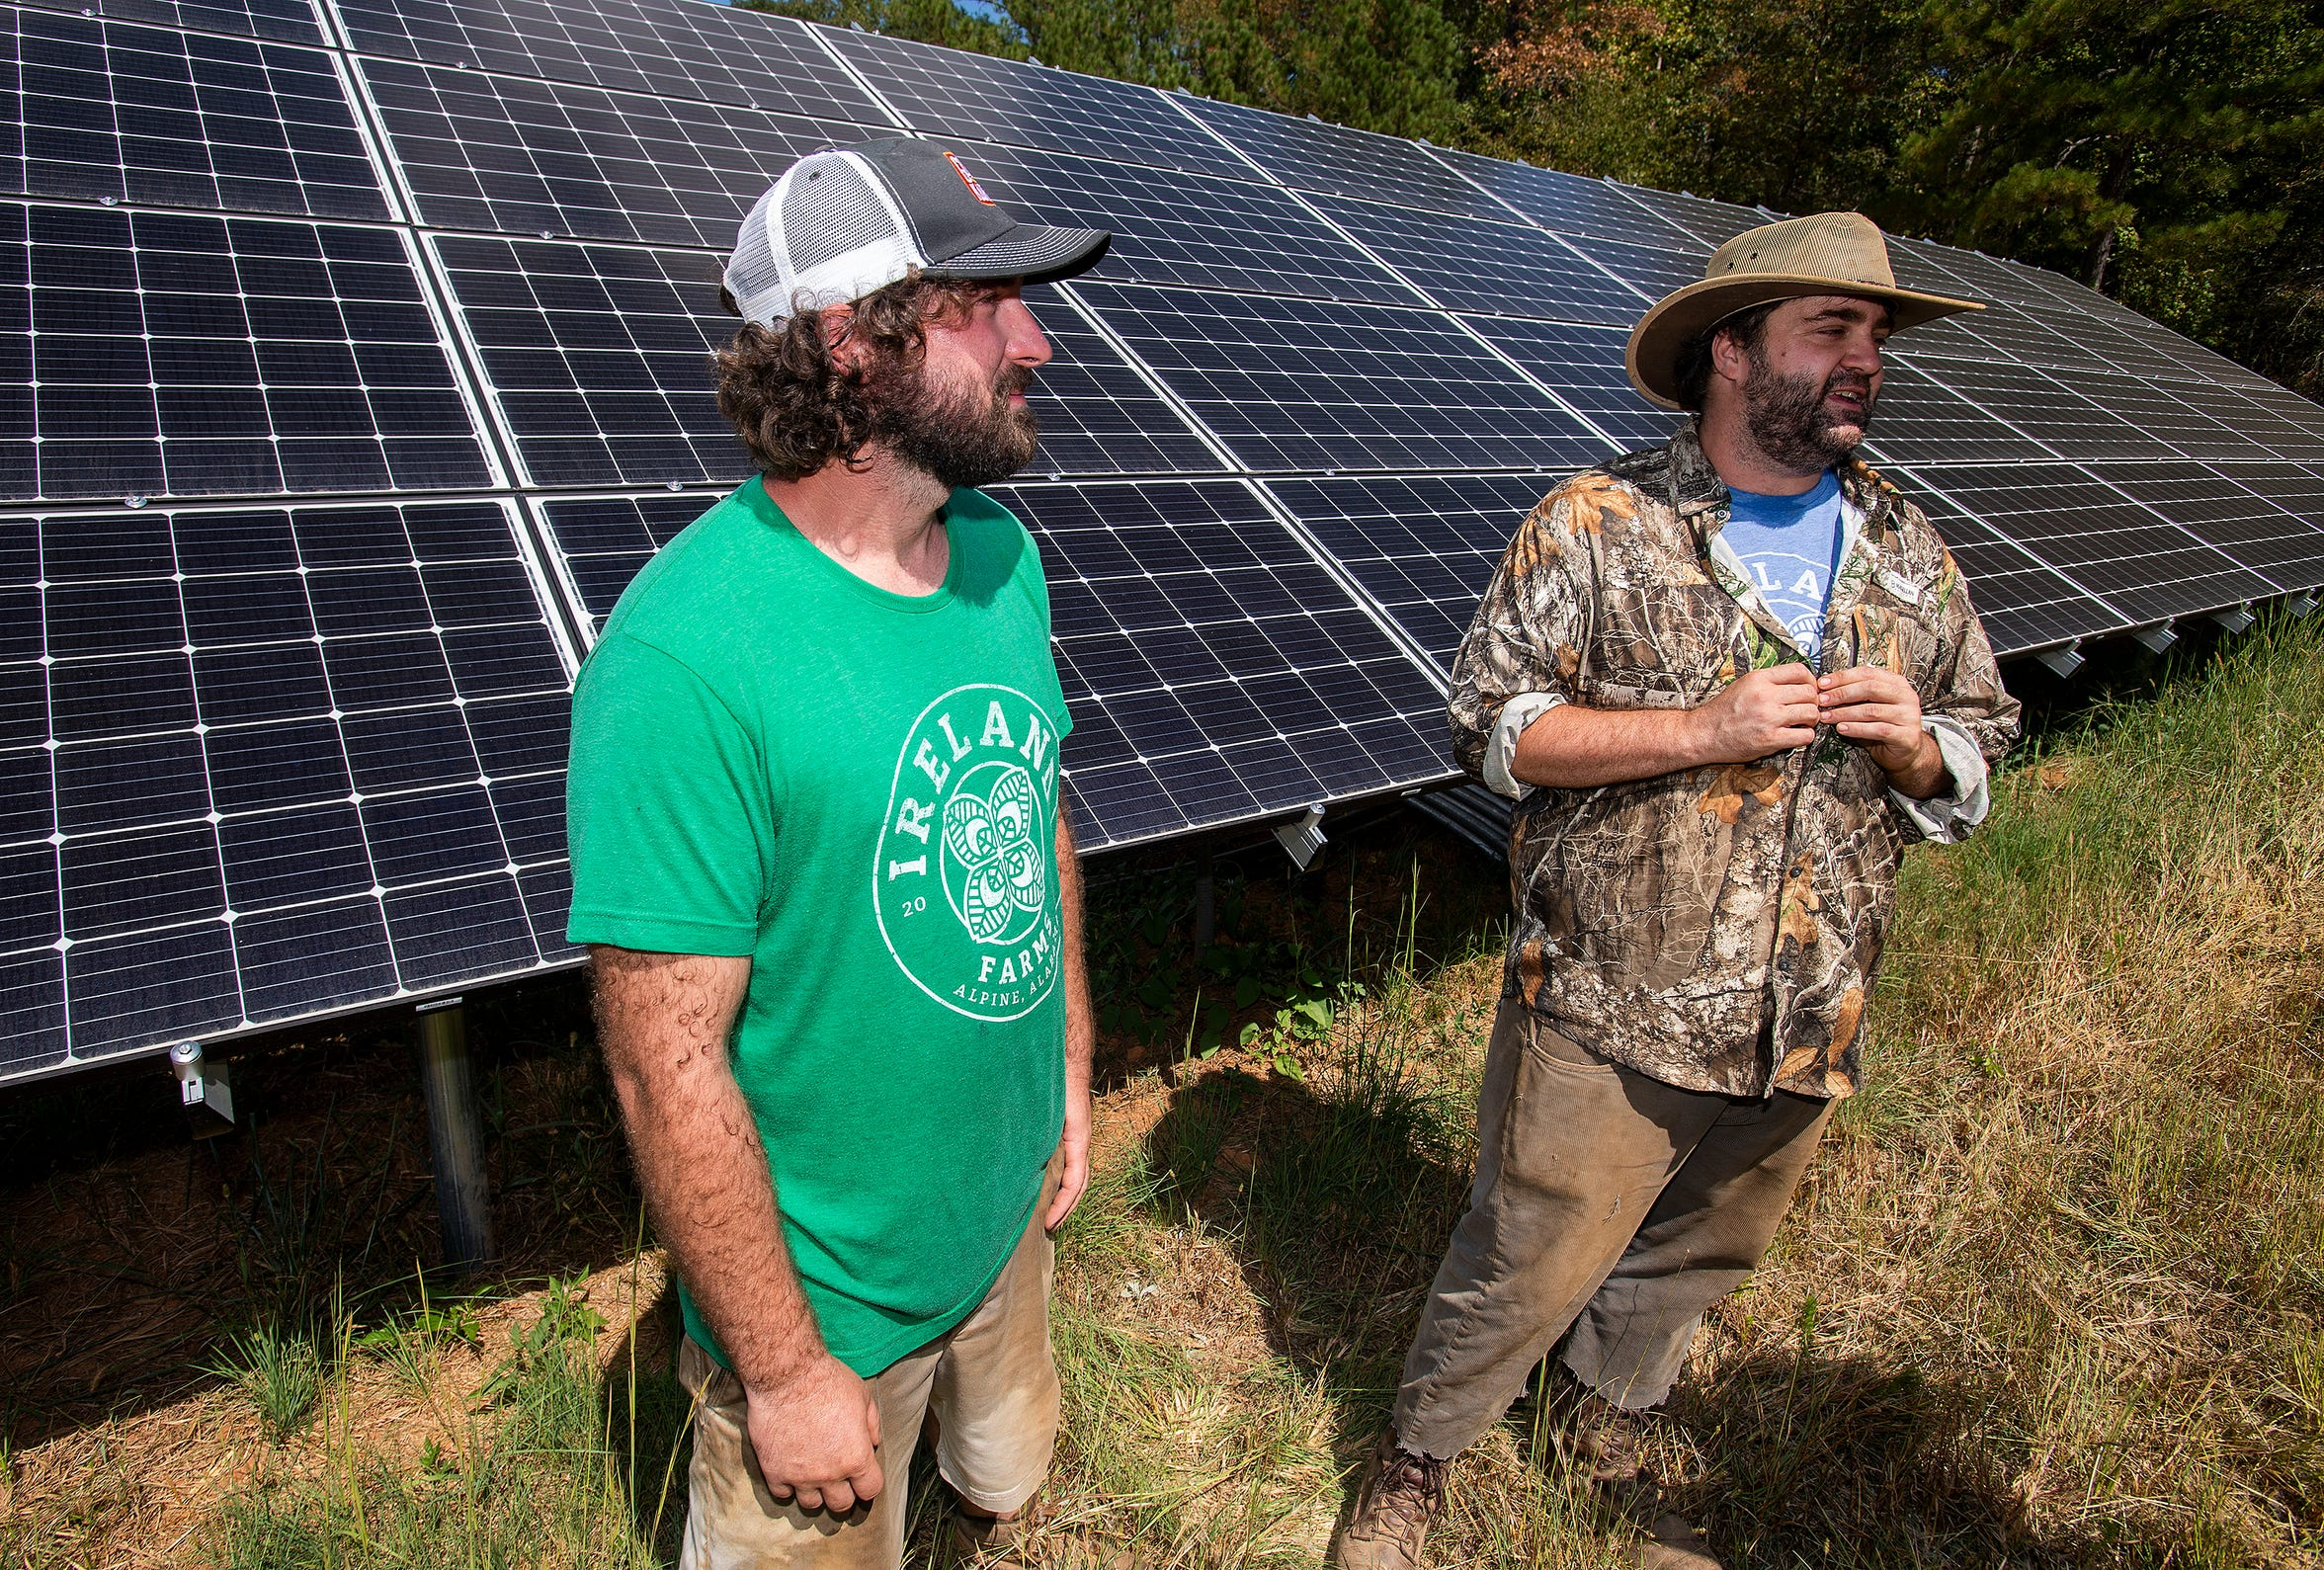 Hollin Williams, left, and Scott Ireland, right, discuss the solar panels at Ireland Farms in Alpine, Ala., on Wednesday September 25, 2019.